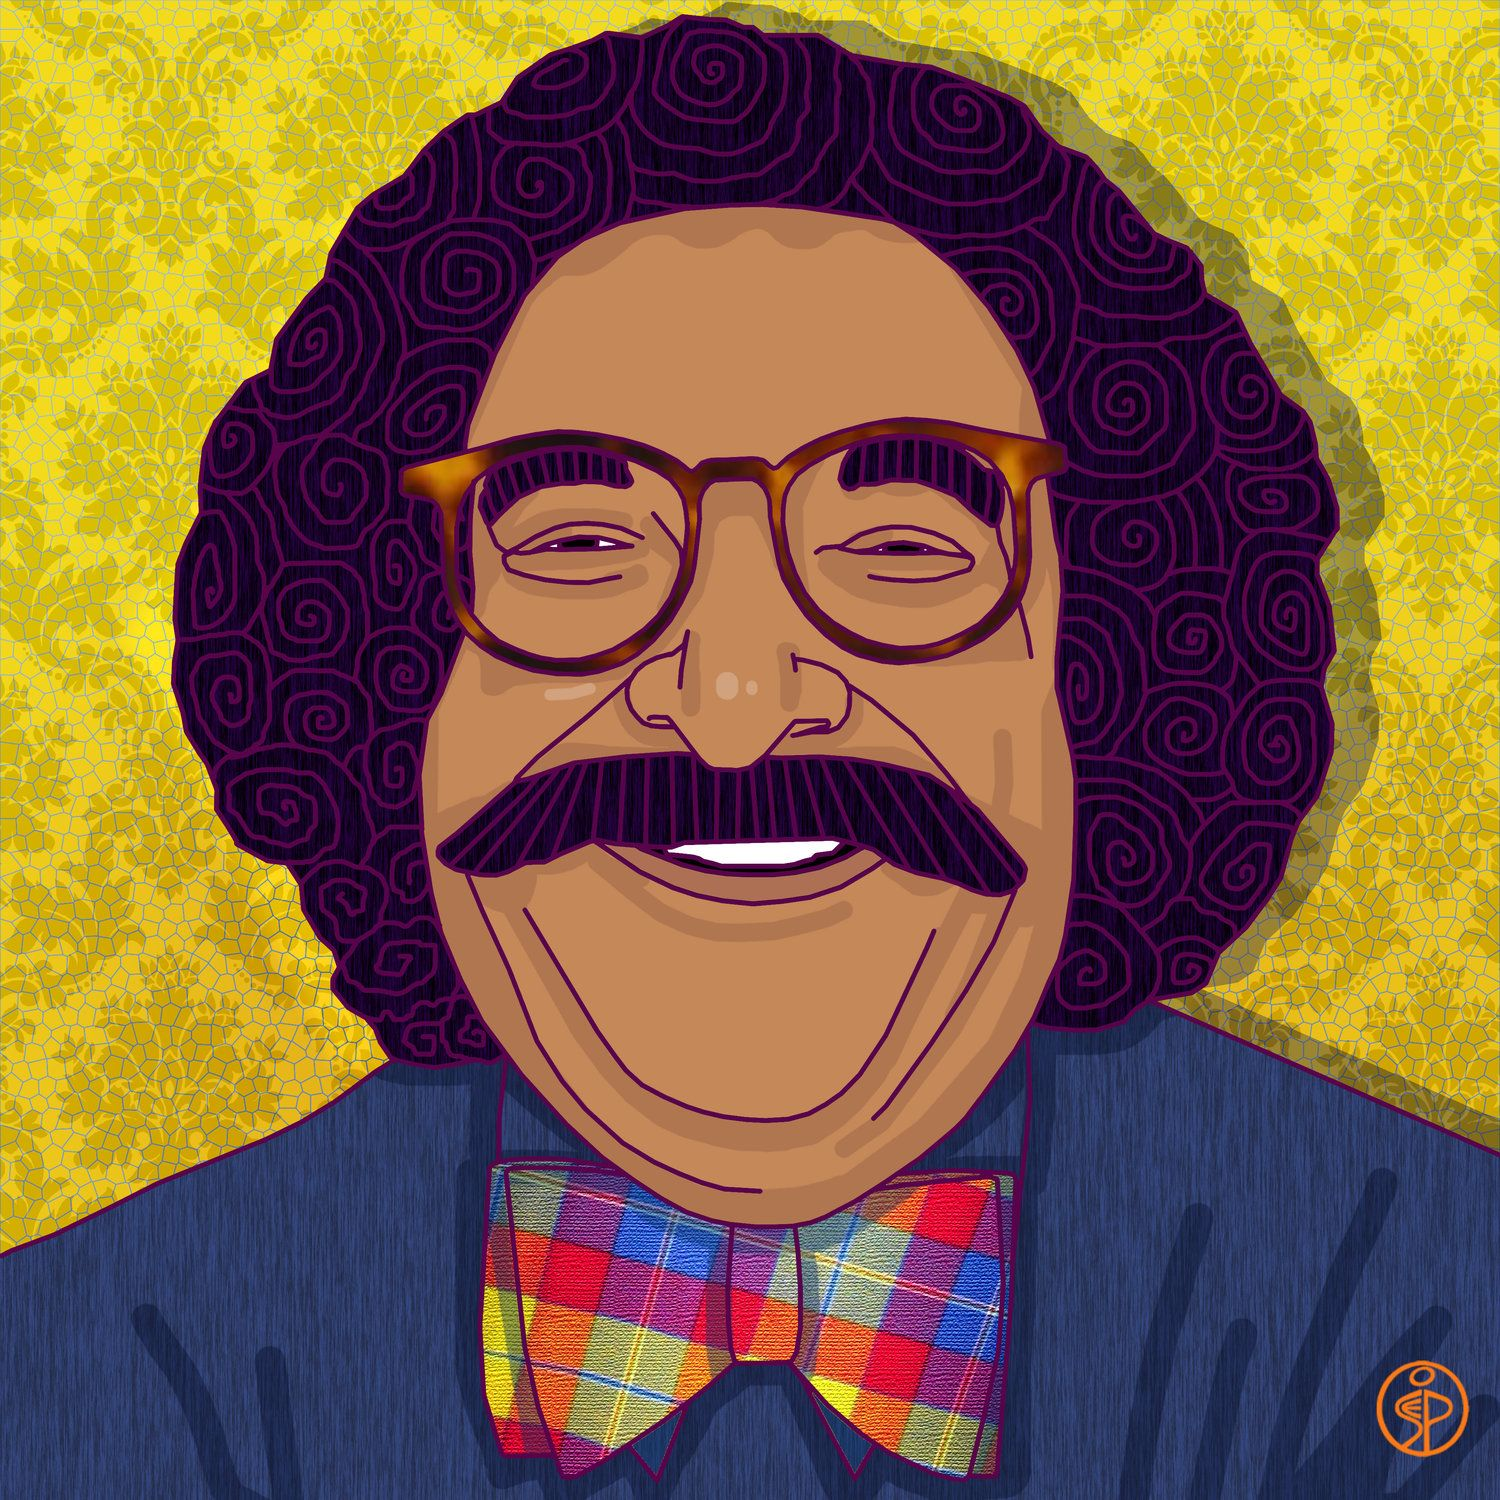 We grew up with Gene Shalit always popping up on TV and always with a smile! I saw him on the street in NYC one day and he gave me a big thumbs up, a smile and a wave! #geneshalit #thetodayshow #nbc #popart #saraphia